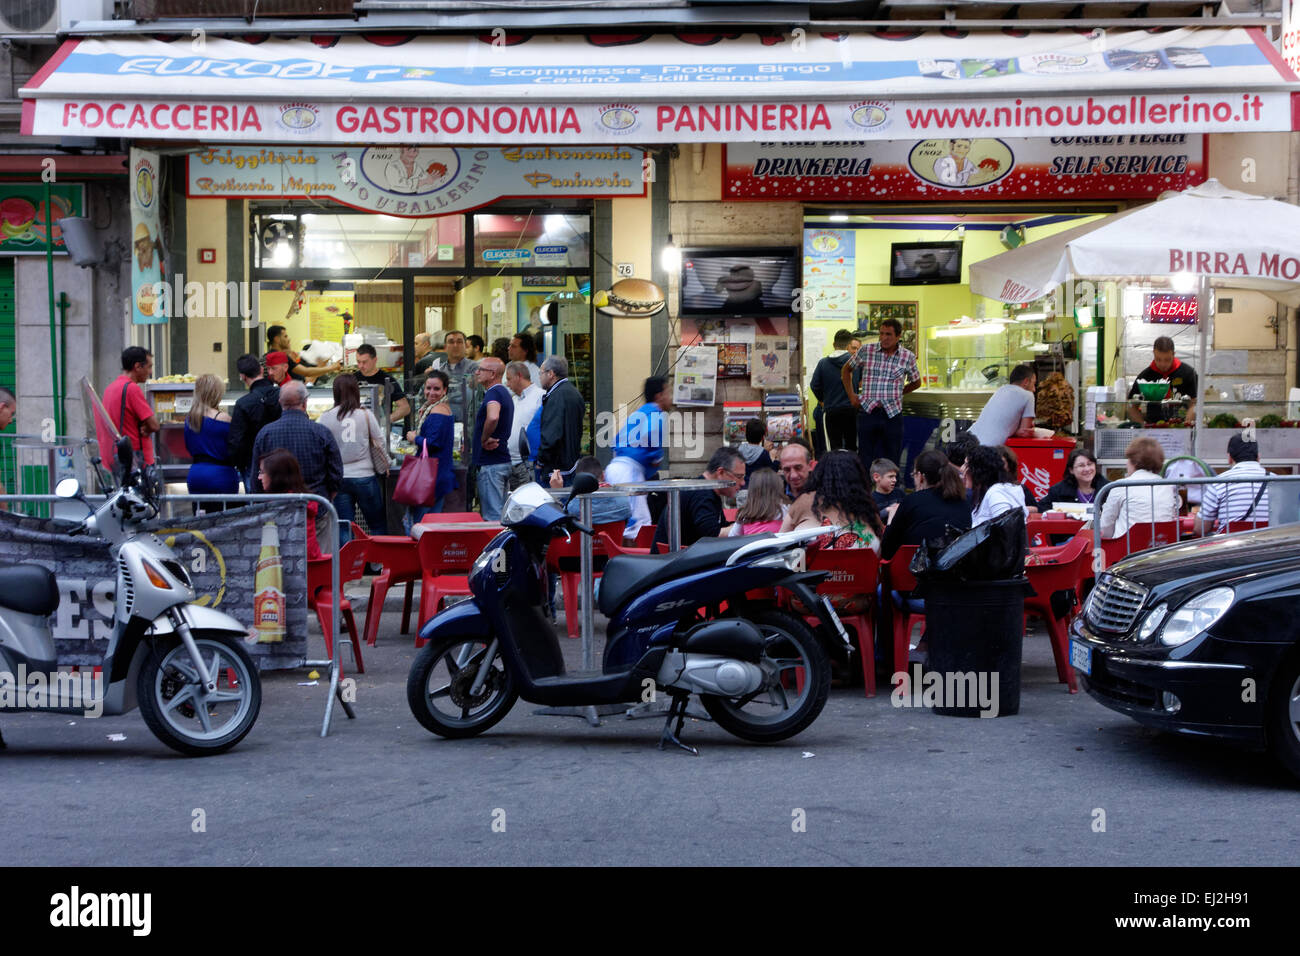 Street scene of people at restaurant in Palermo, Sicily. - Stock Image